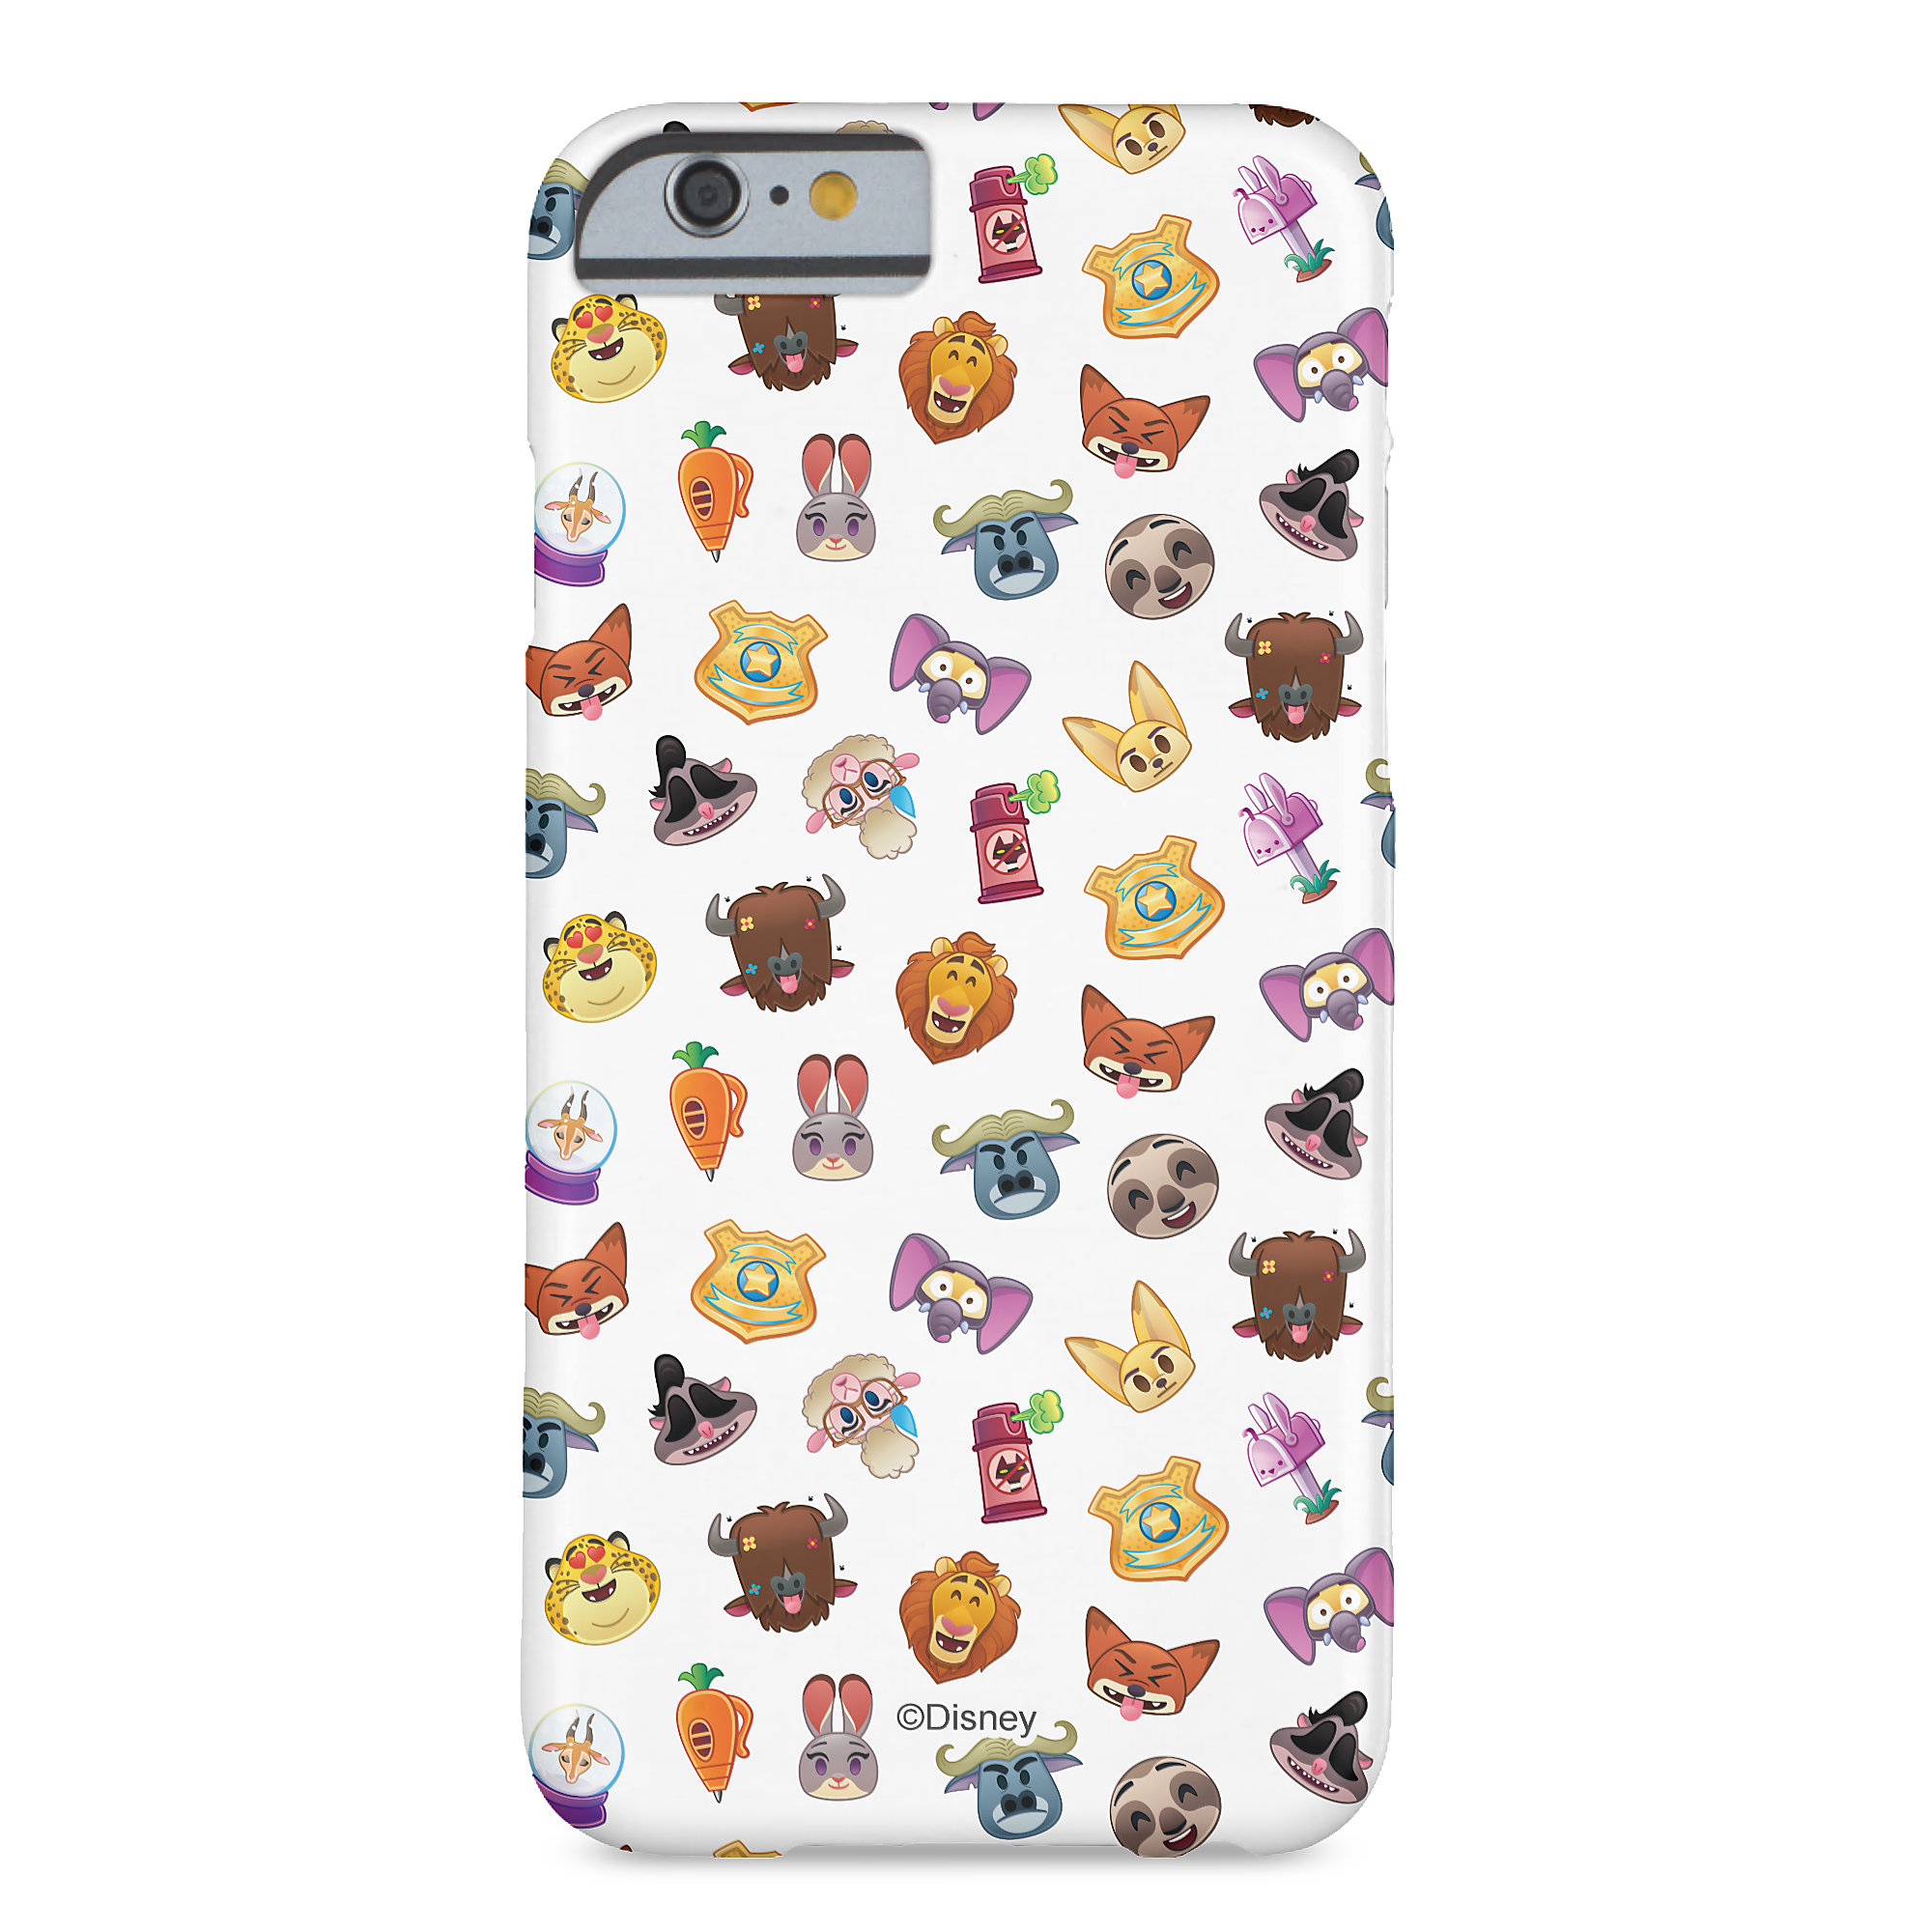 Zootopia Emoji iPhone 6/6S Case - Customizable